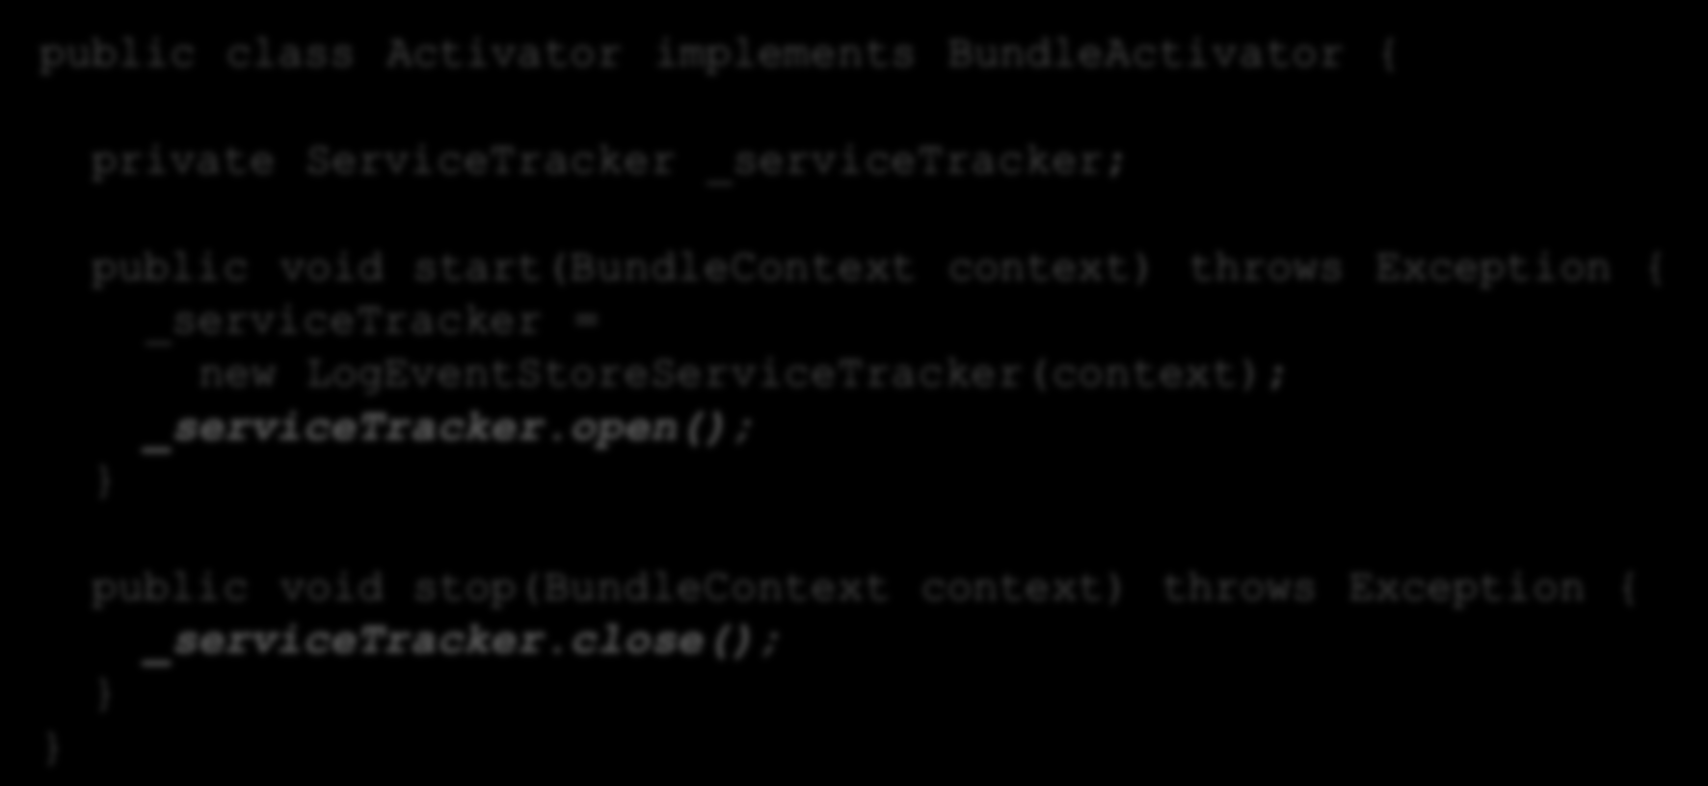 Service Tracker II public class Activator implements BundleActivator { private ServiceTracker _servicetracker; public void start(bundlecontext context) throws Exception {